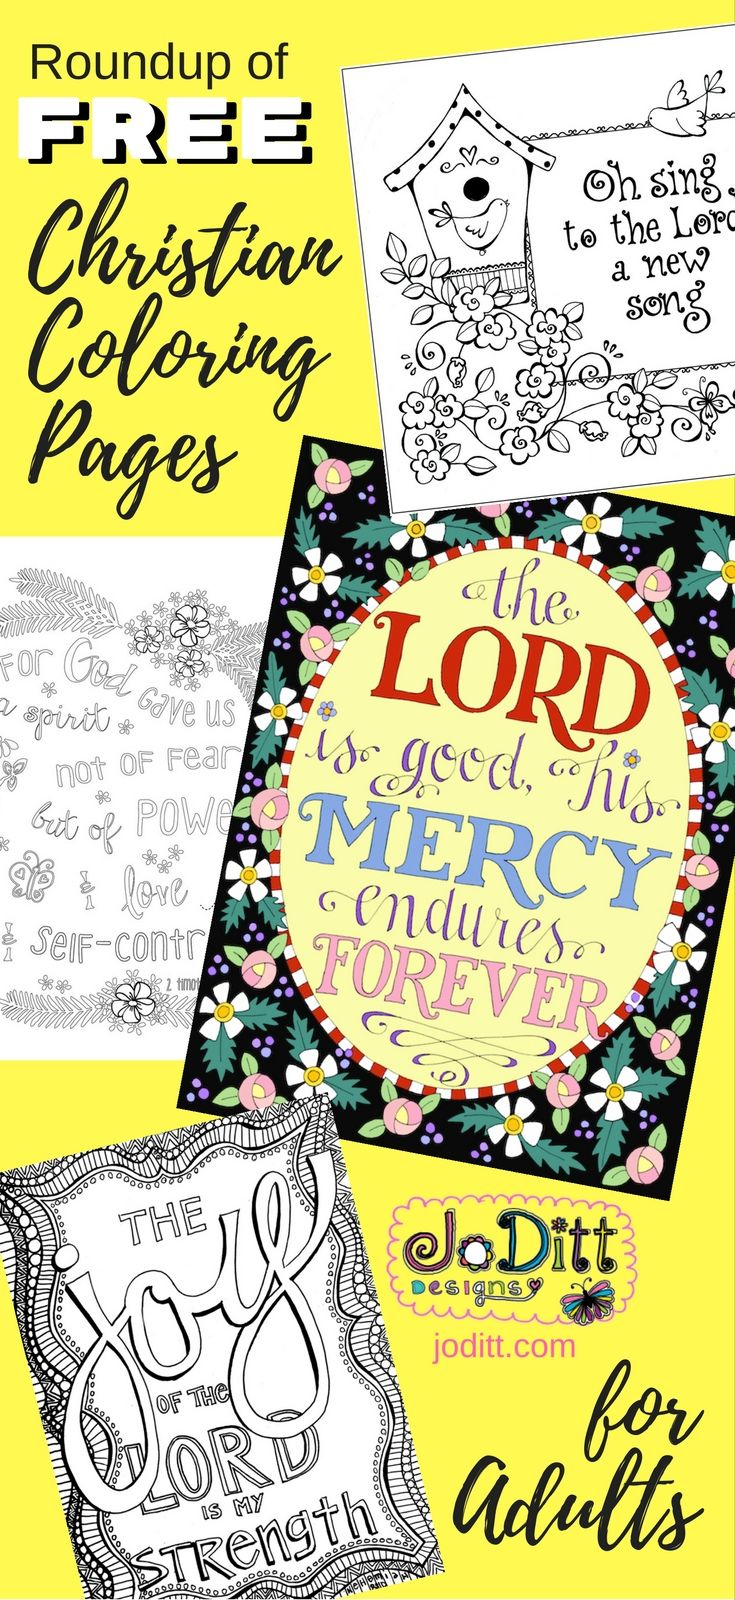 Free Christian Coloring Pages For Adults - Roundup | Faith